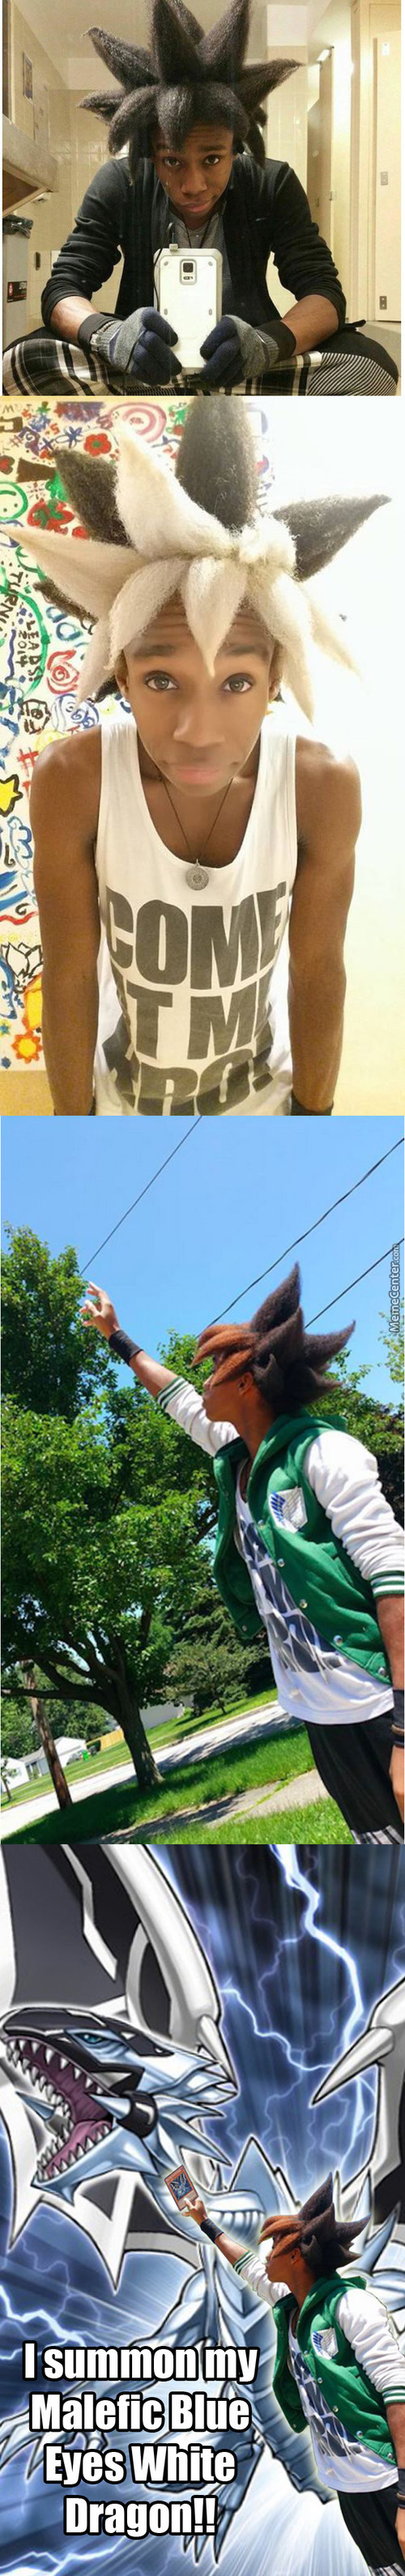 The New Yu-Gi-Oh! Real Live Movie Look Promising, Or Dont